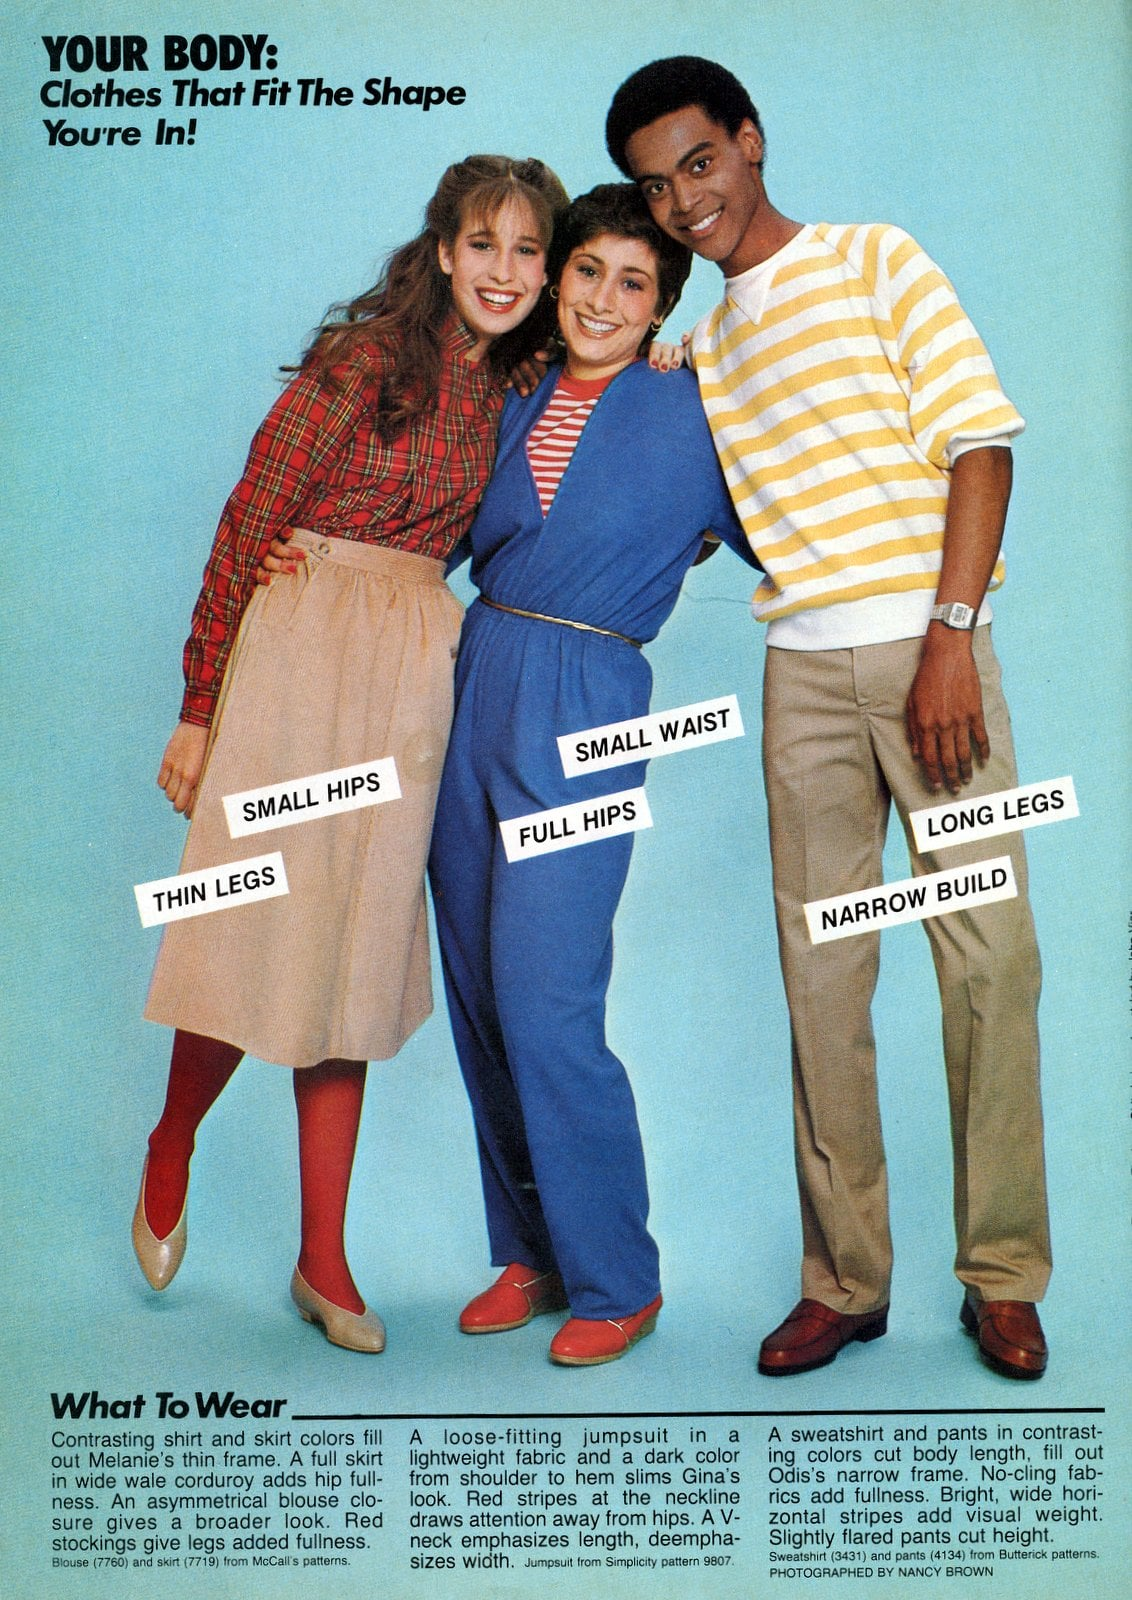 Vintage fashion tips for teens from 1982 (1)